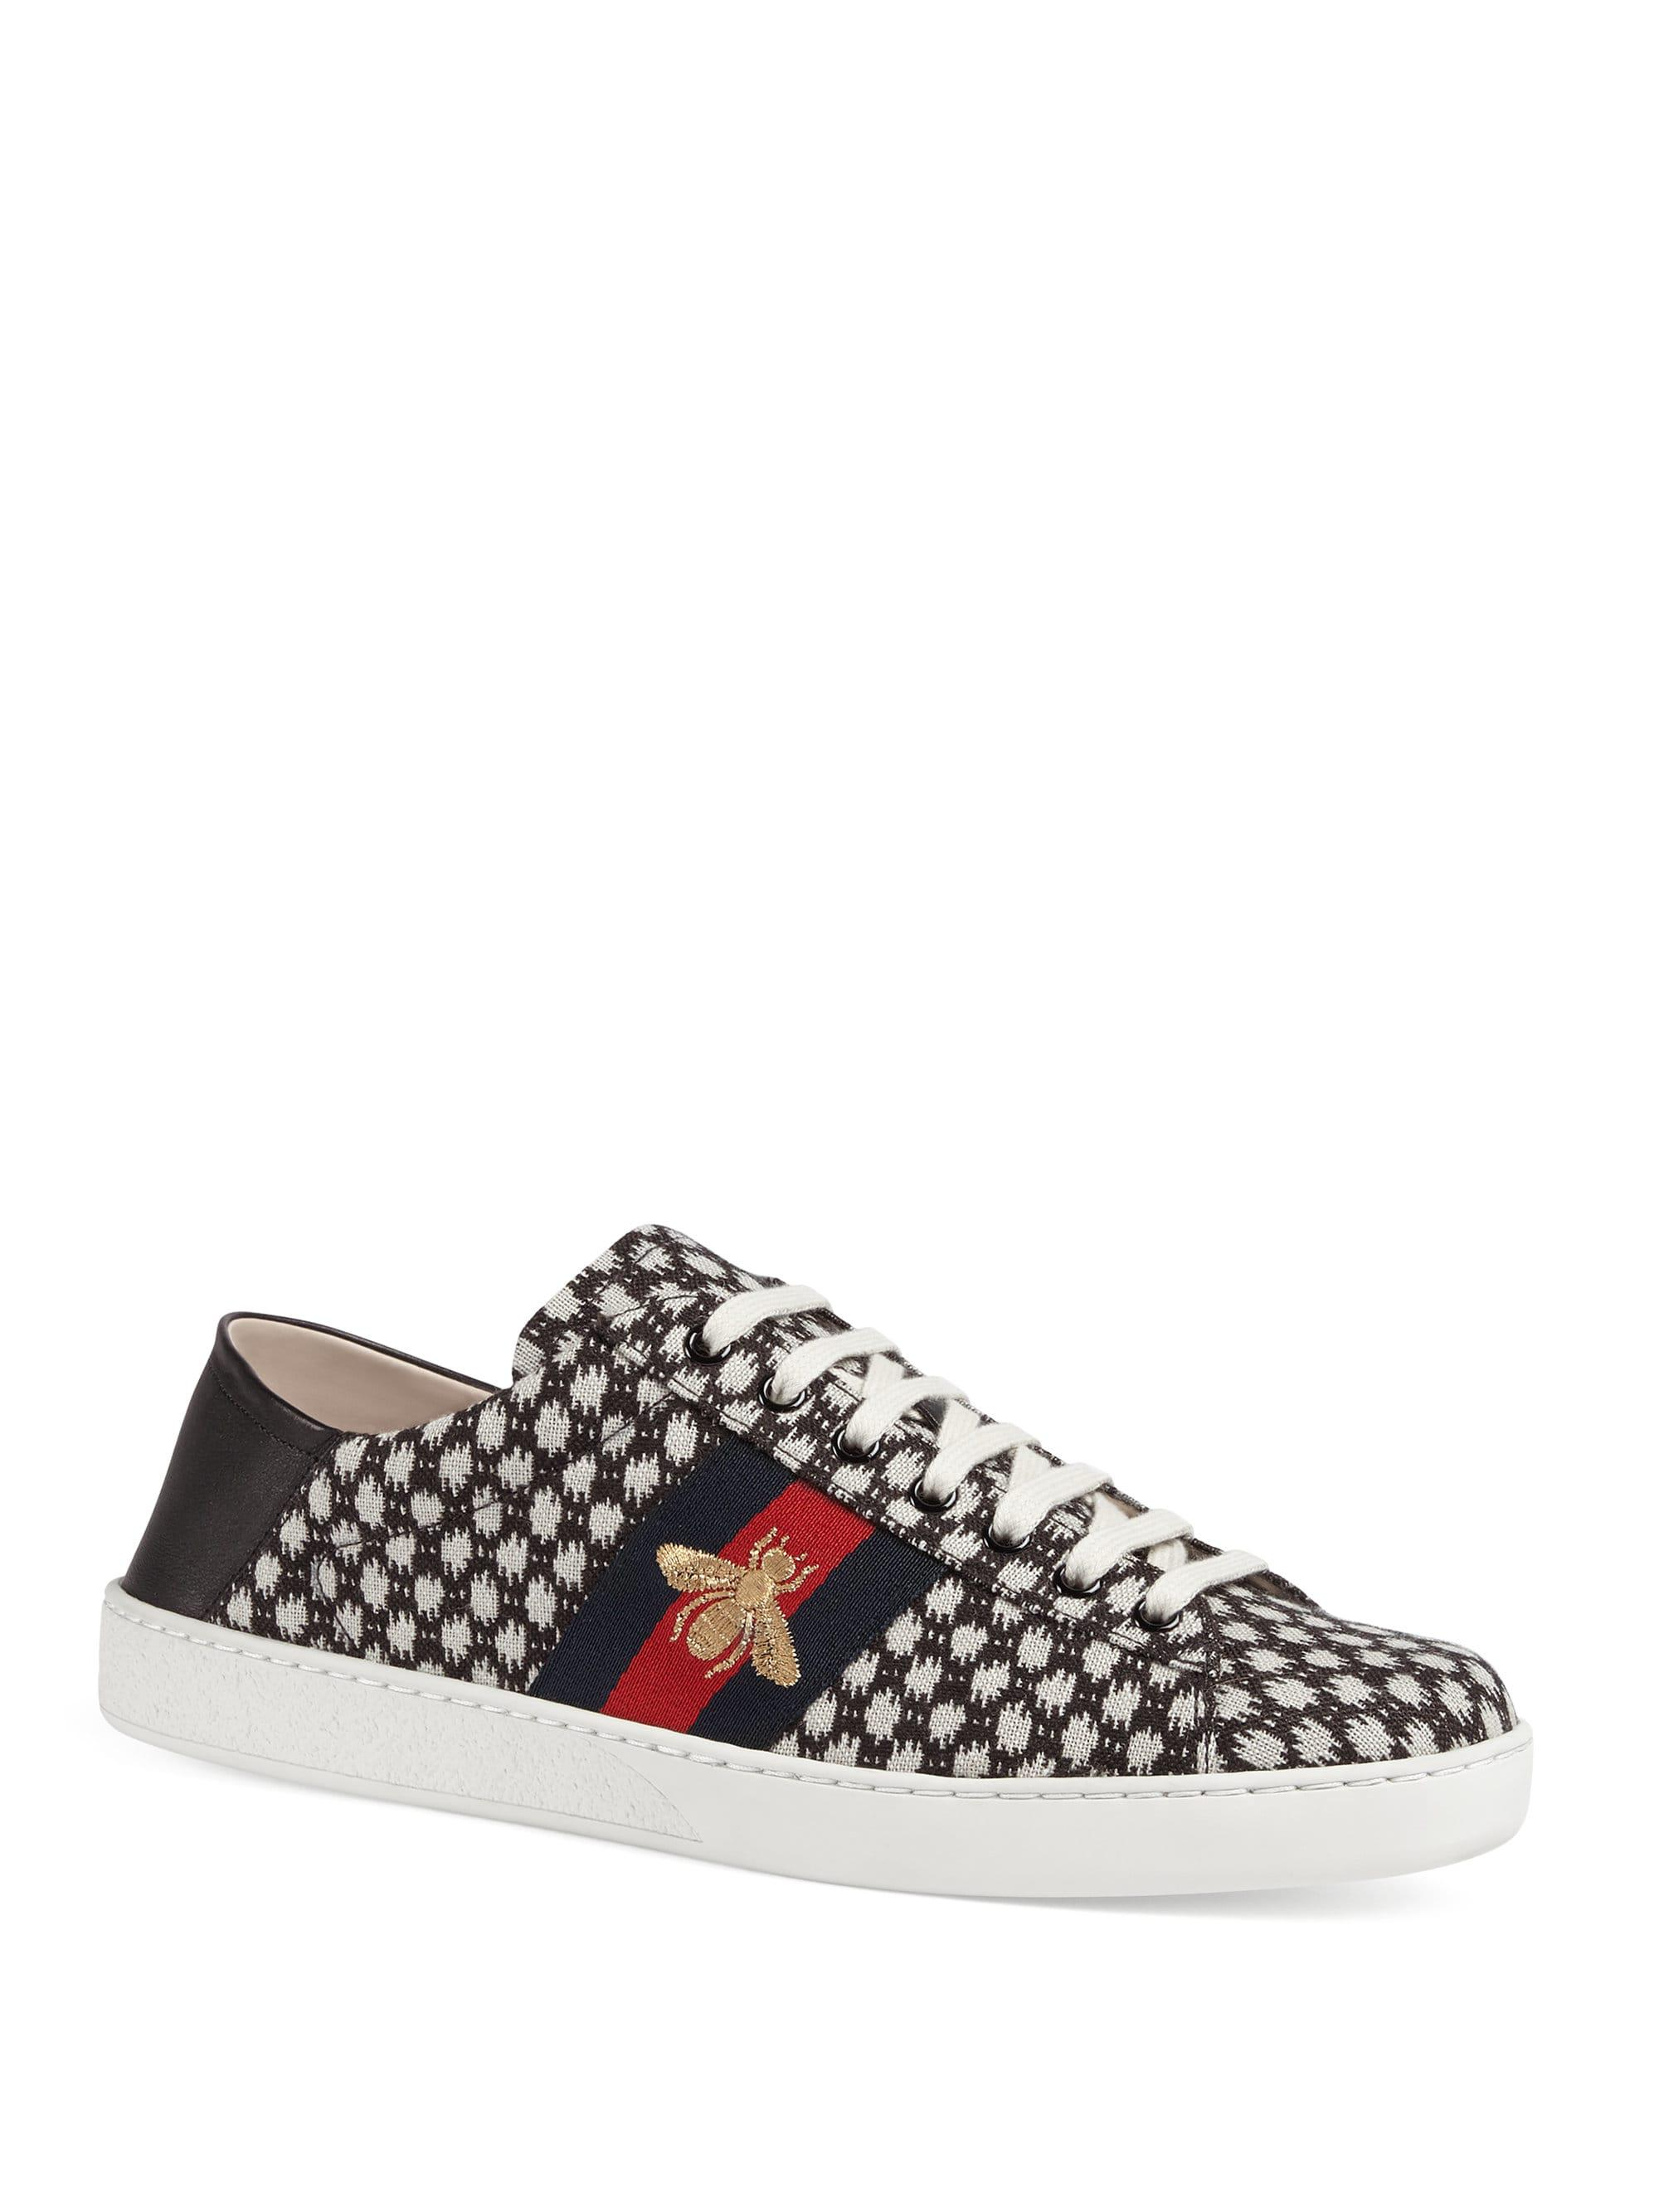 b2f9ae10635 Gucci New Ace Jacquard Sneaker for Men - Lyst